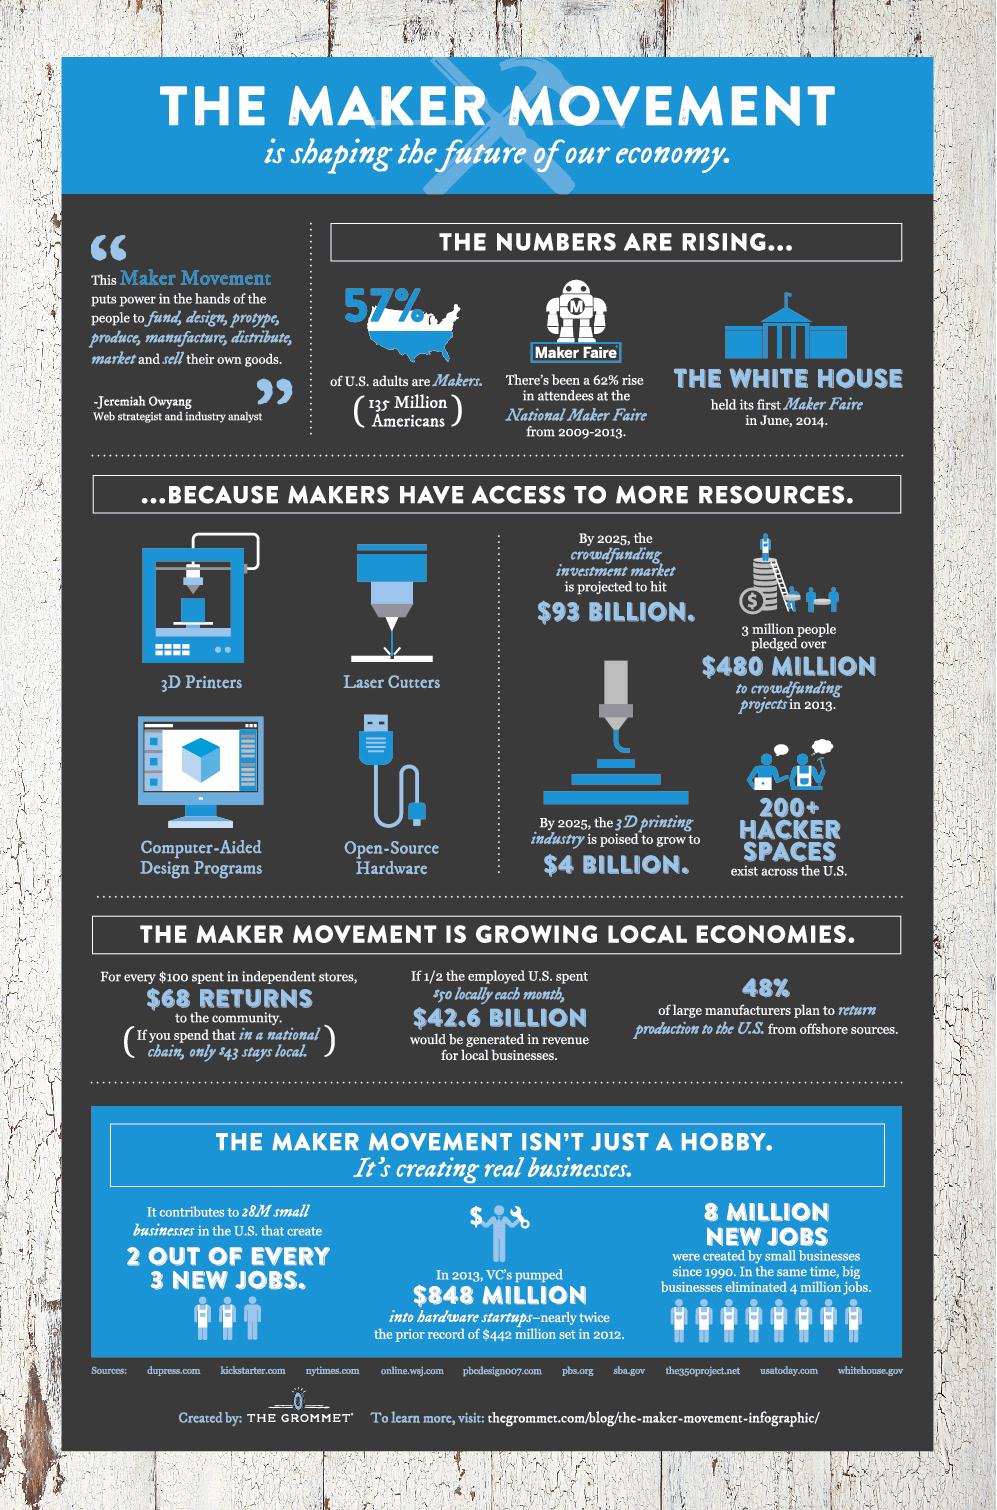 The Maker Movement: Our Future Economy (An Infographic)